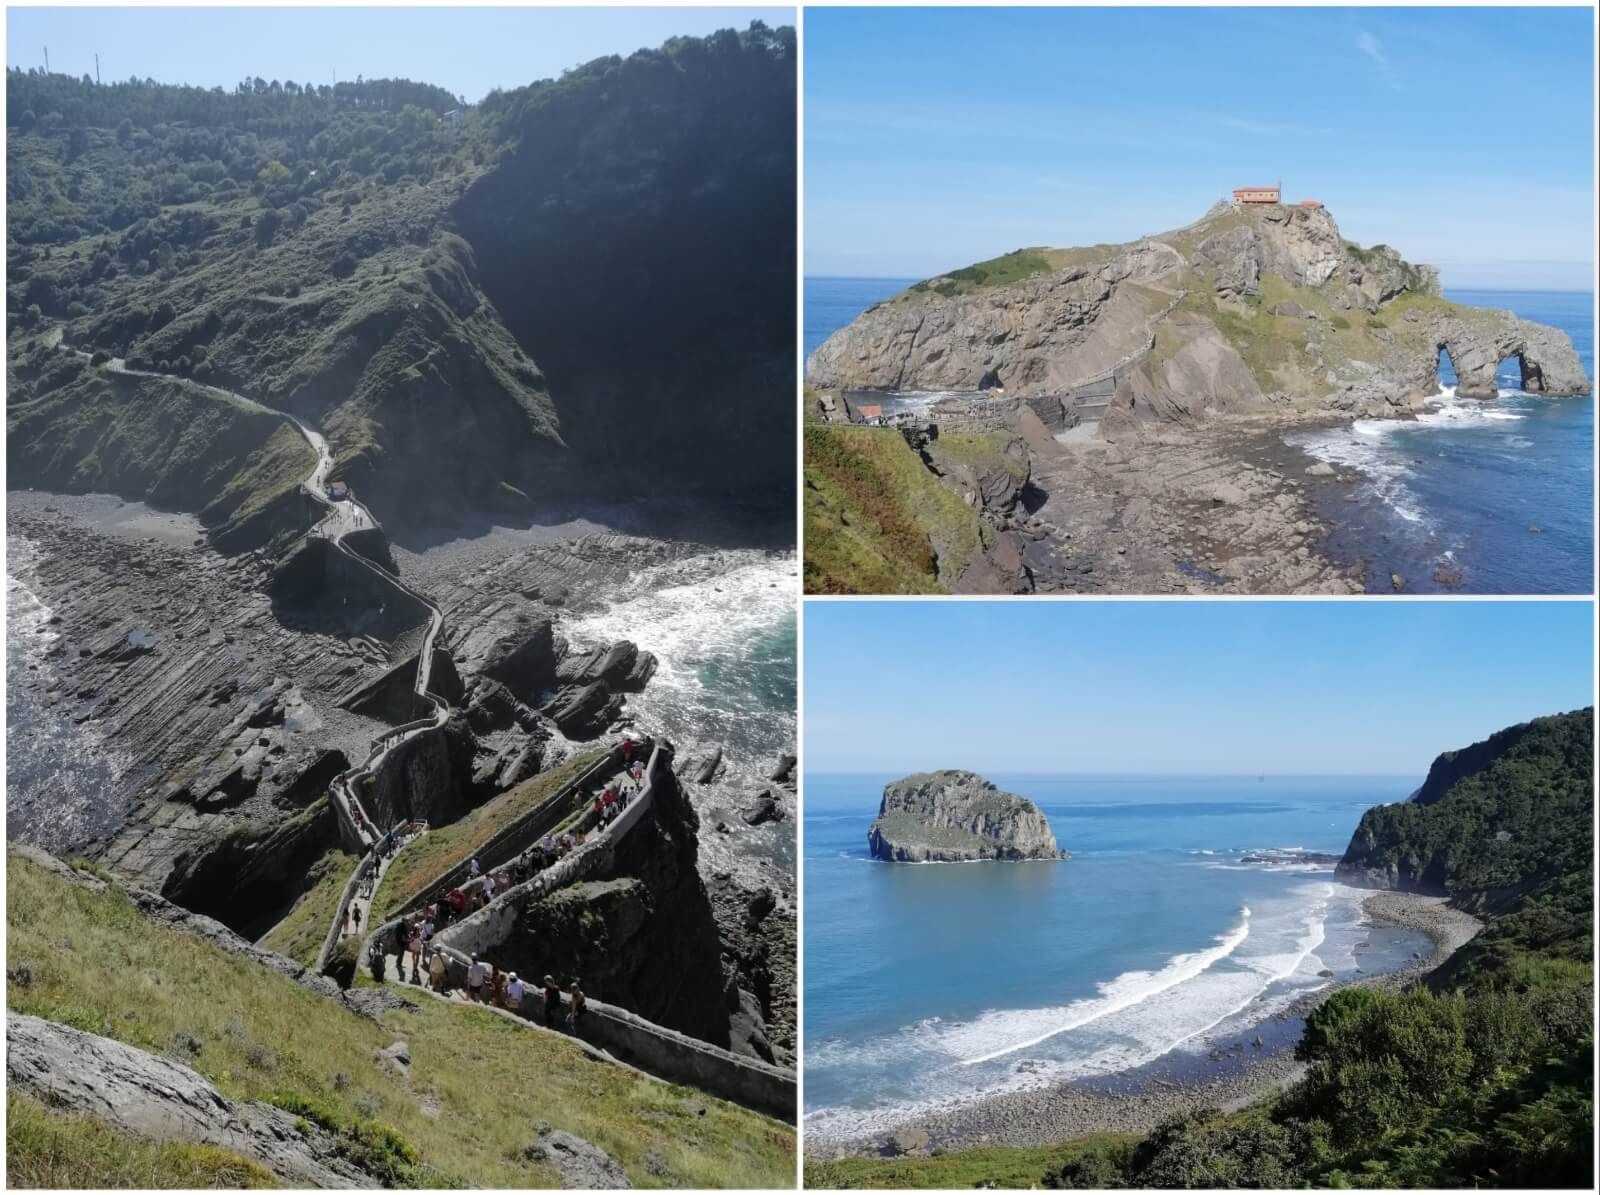 What to see and do in Northern Spain: top 6 ideas - 2. San Juan de Gaztelugatxe